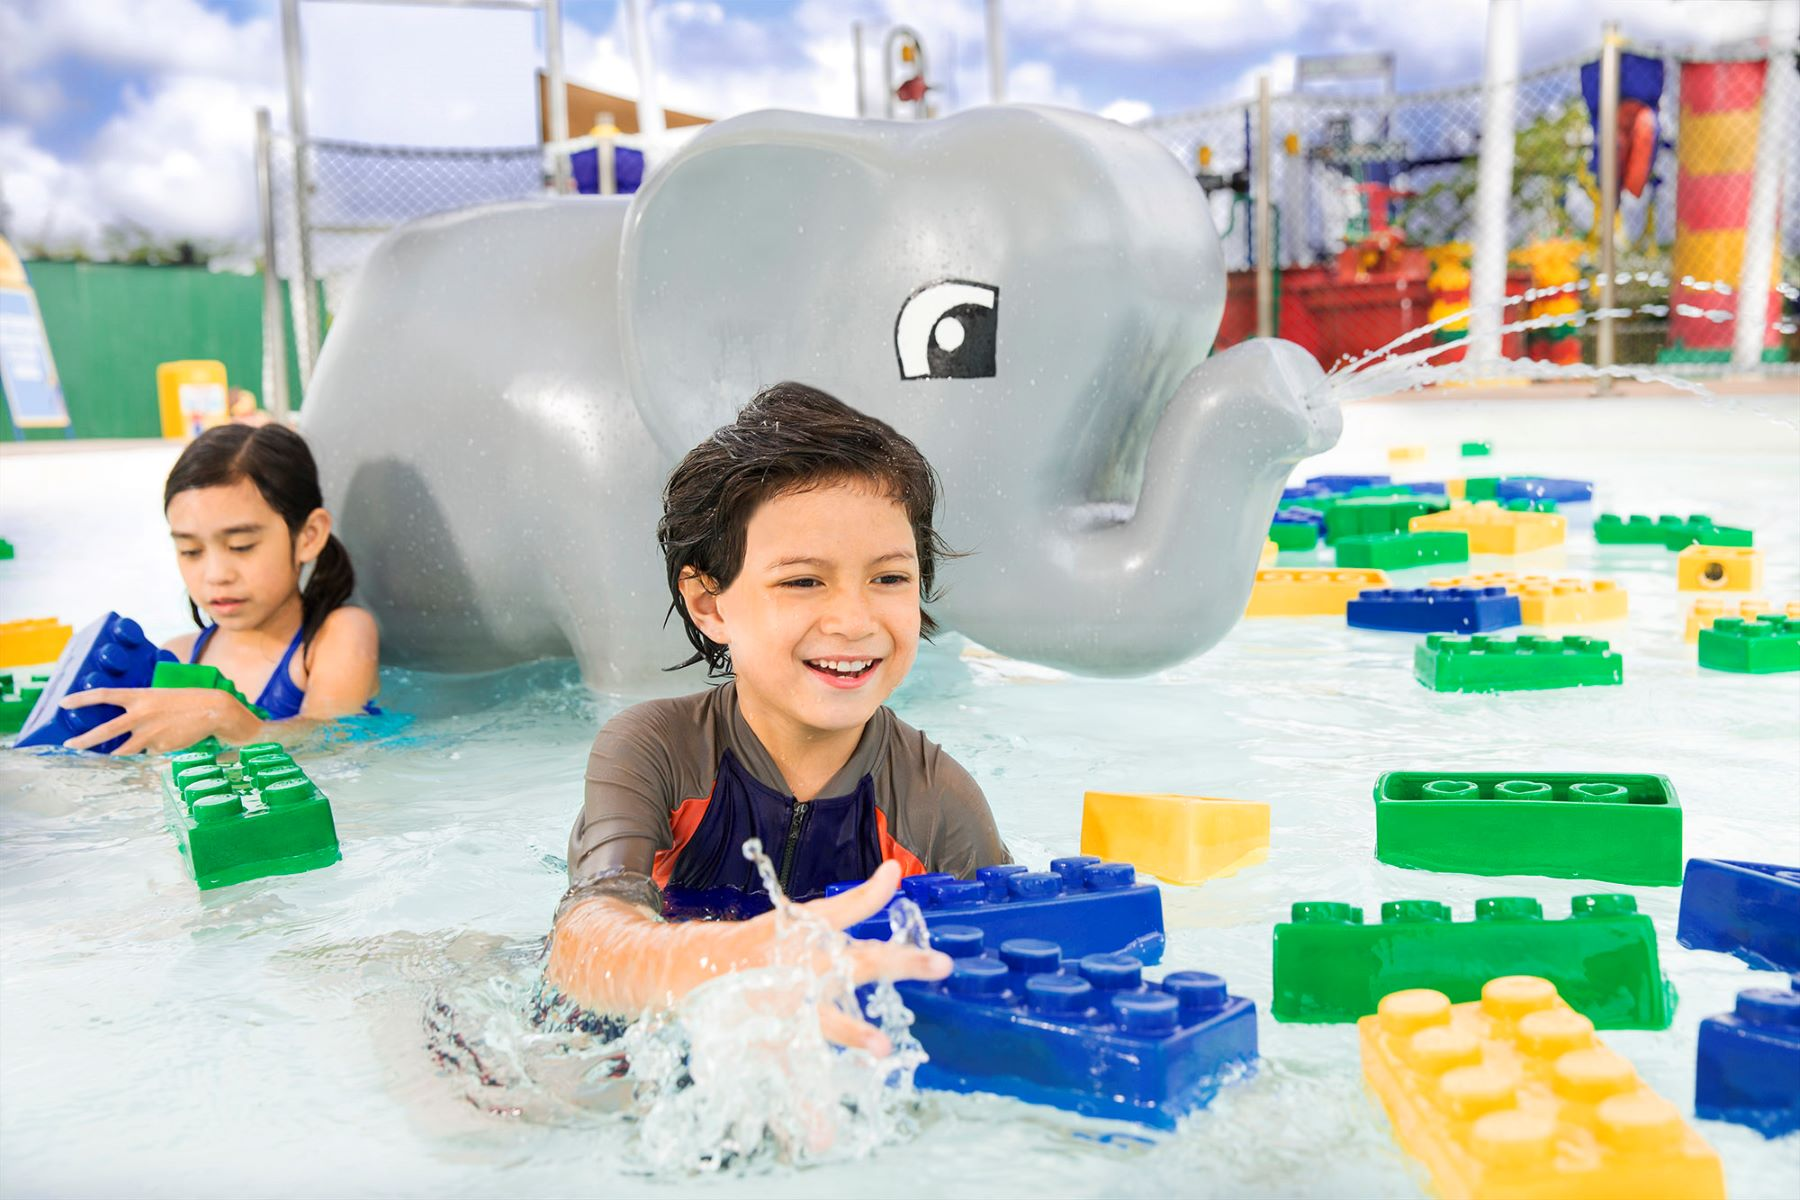 Duplo-Splash-Safari at LEGOLAND Water Park